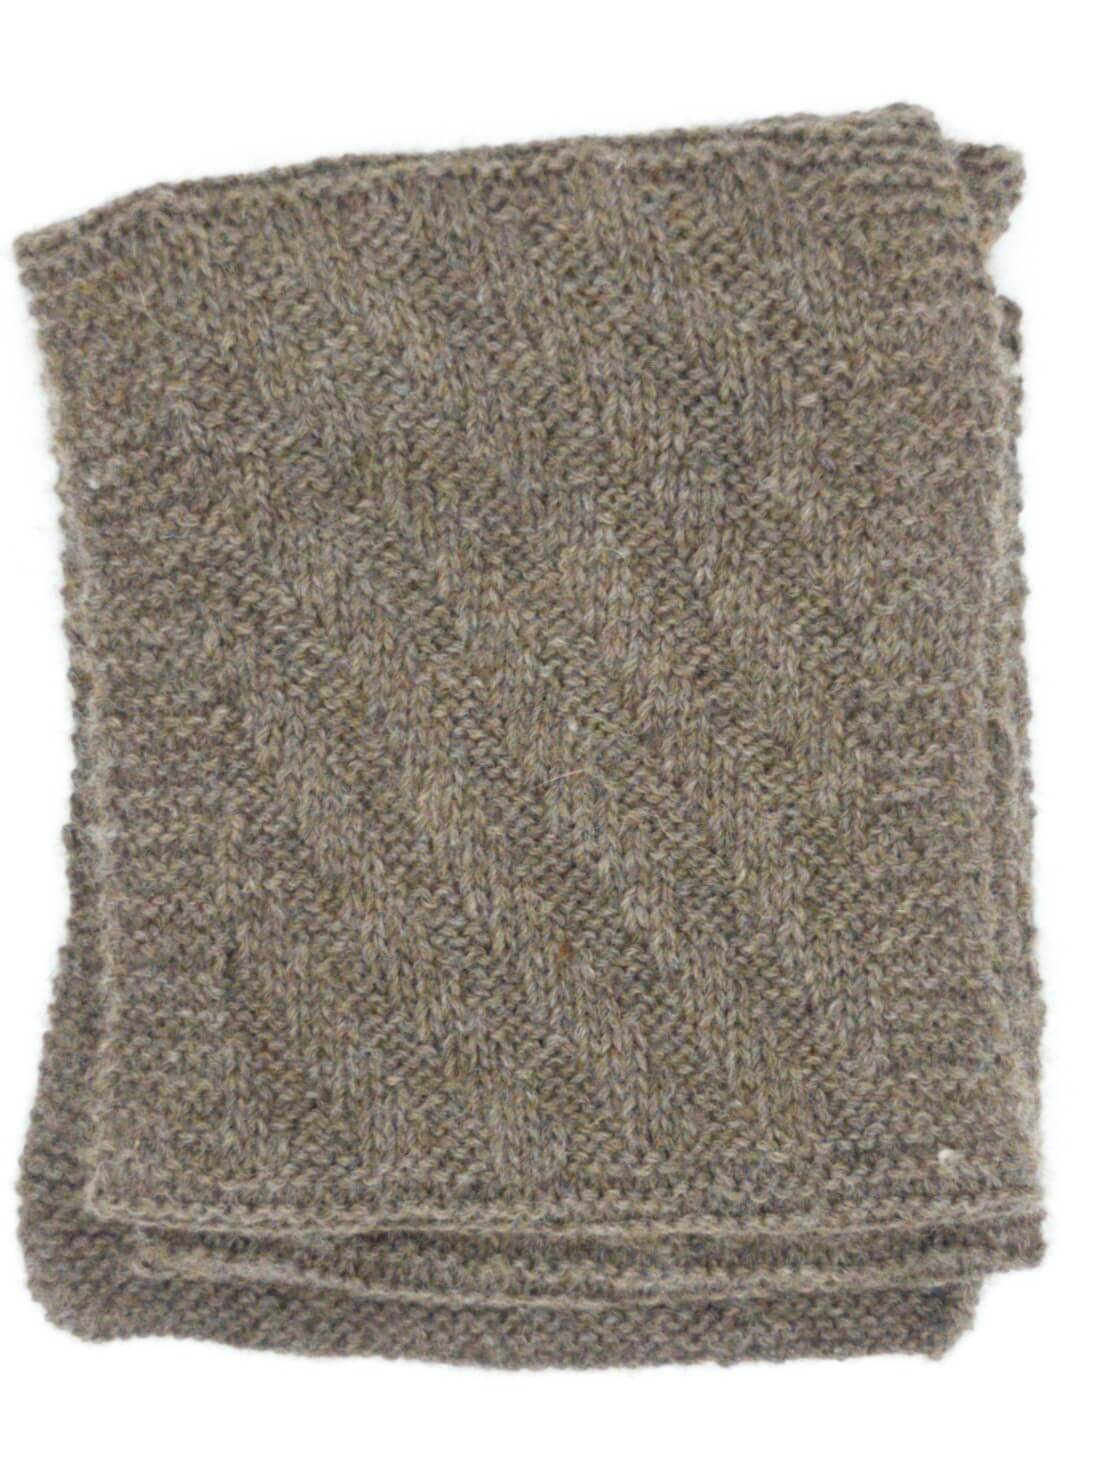 Knit Kit - Beginners' Sampler Scarf +